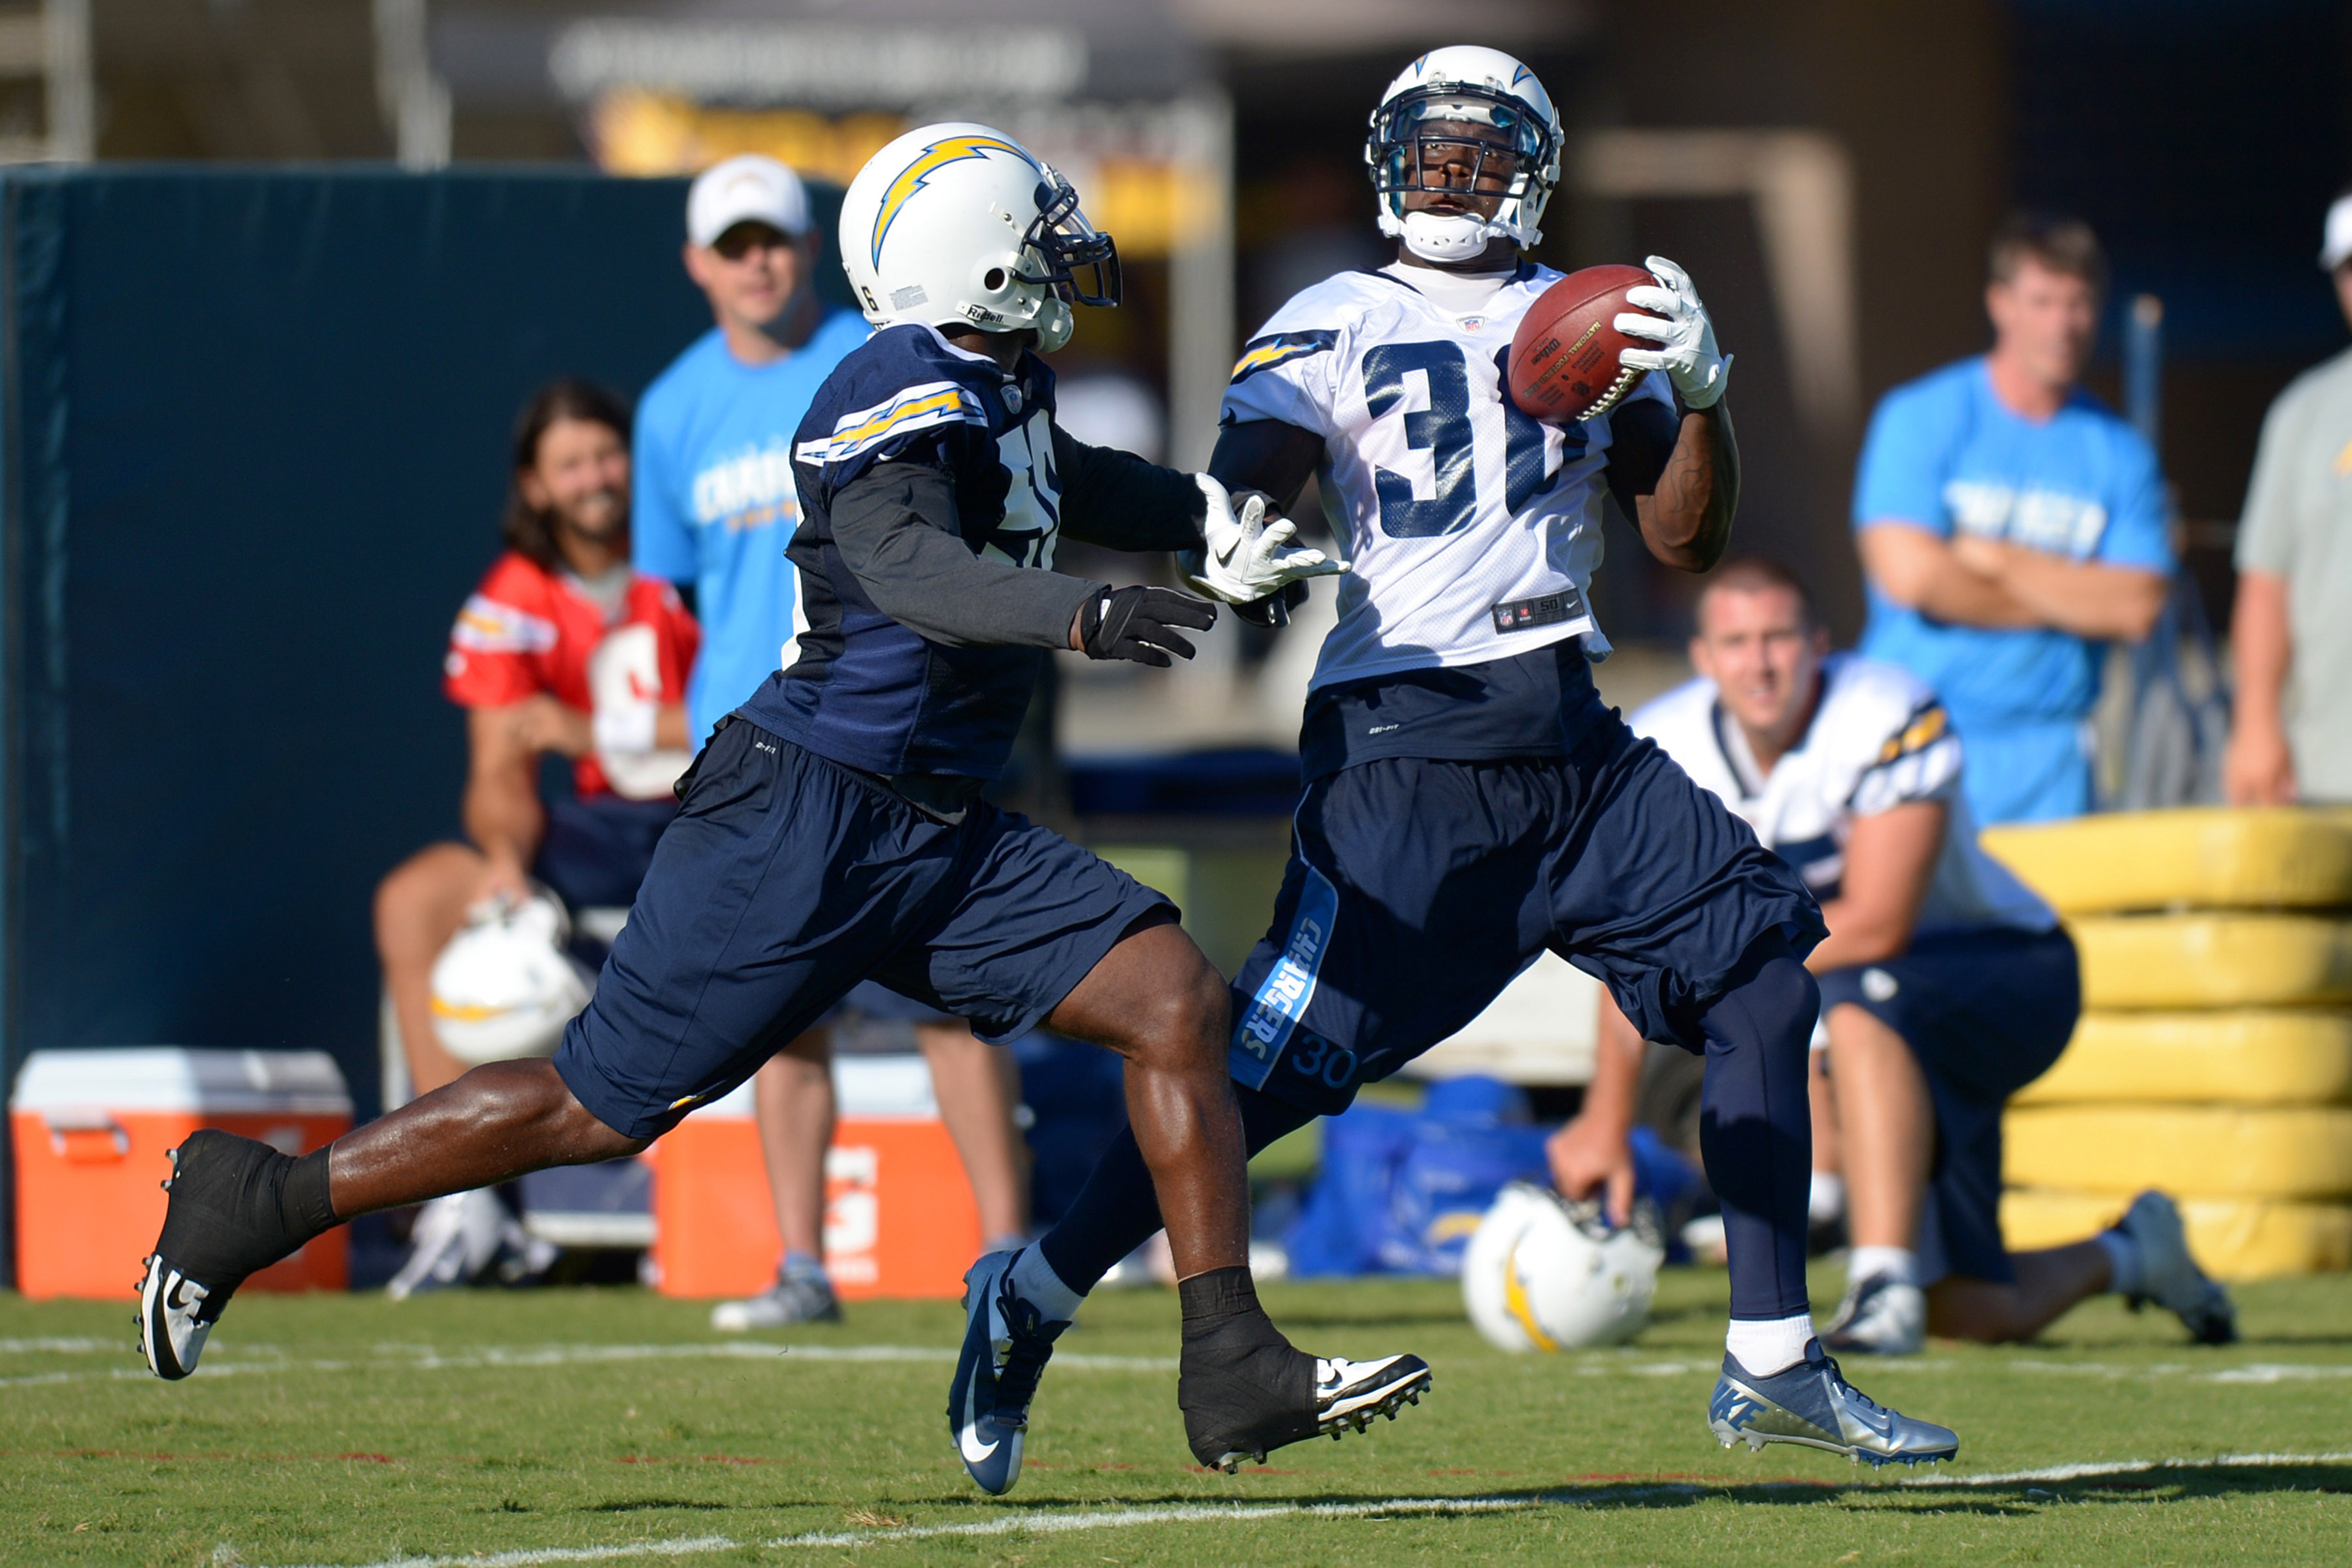 San Diego Chargers running back Ronnie Brown (30) makes a one handed catch while defended by linebacker Donald Butler (56) during training camp at Charger Park.